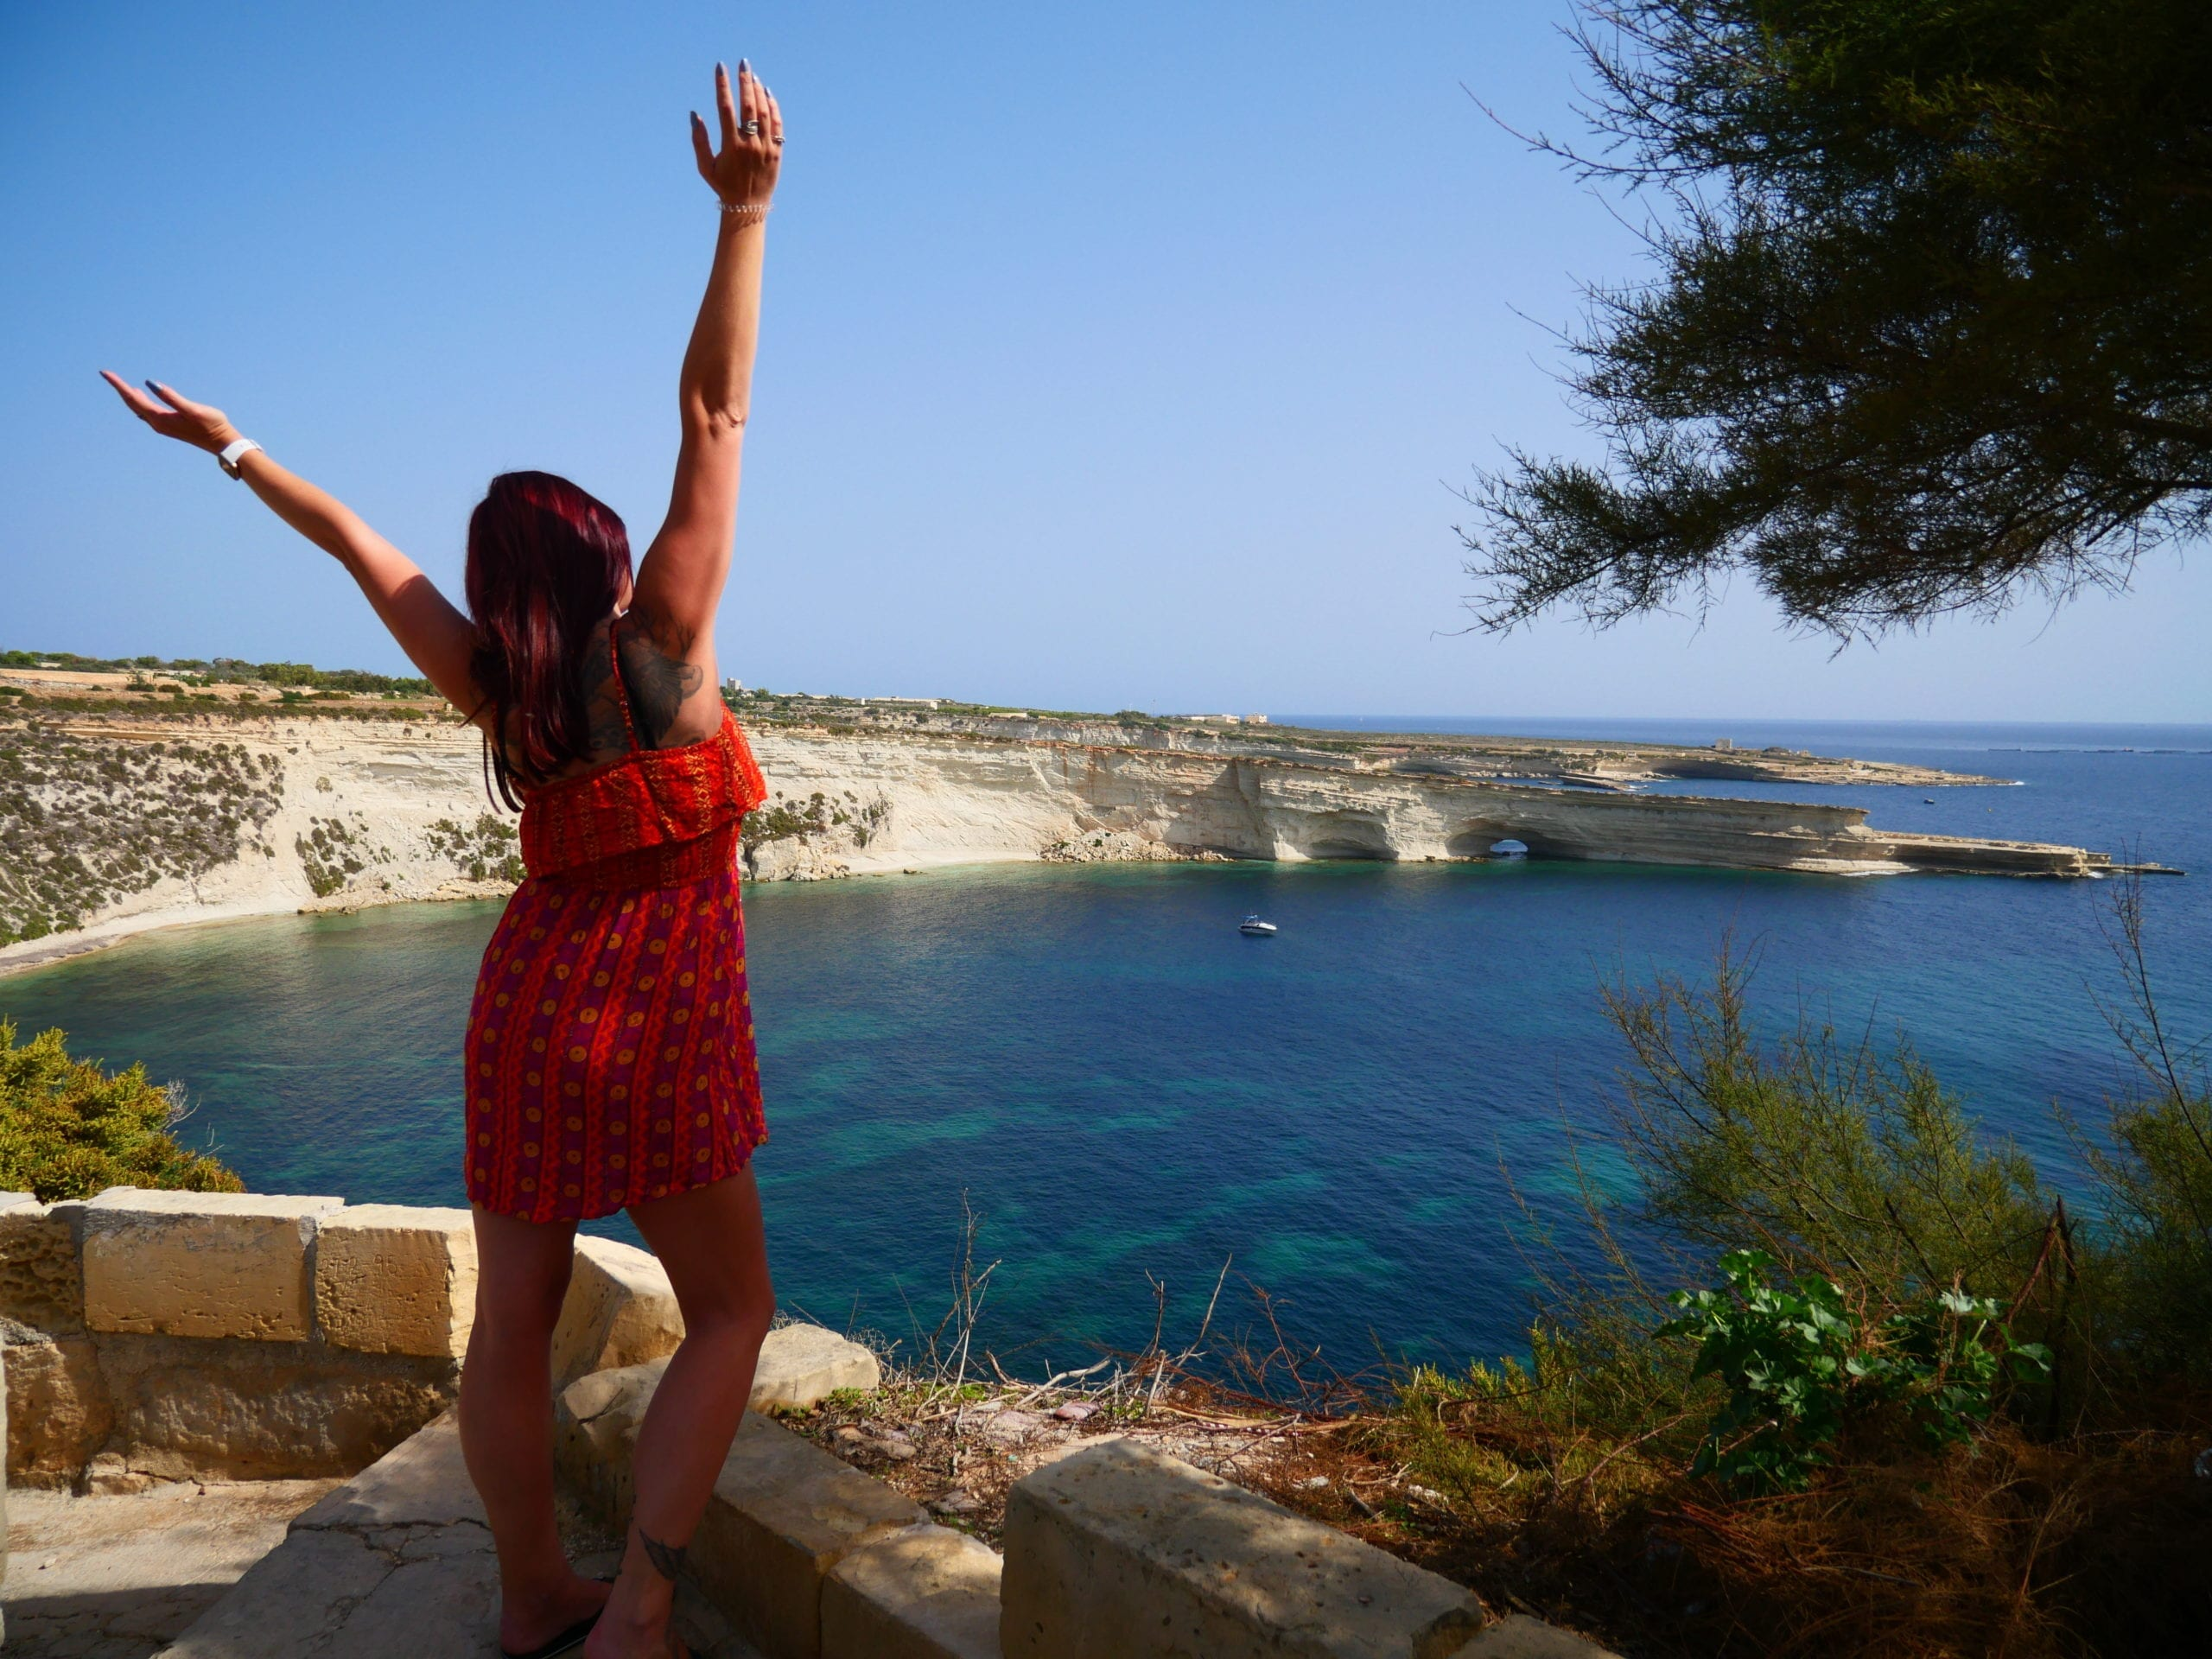 Malta Itinerary & Travel Guide for an Amazing Long Weekend